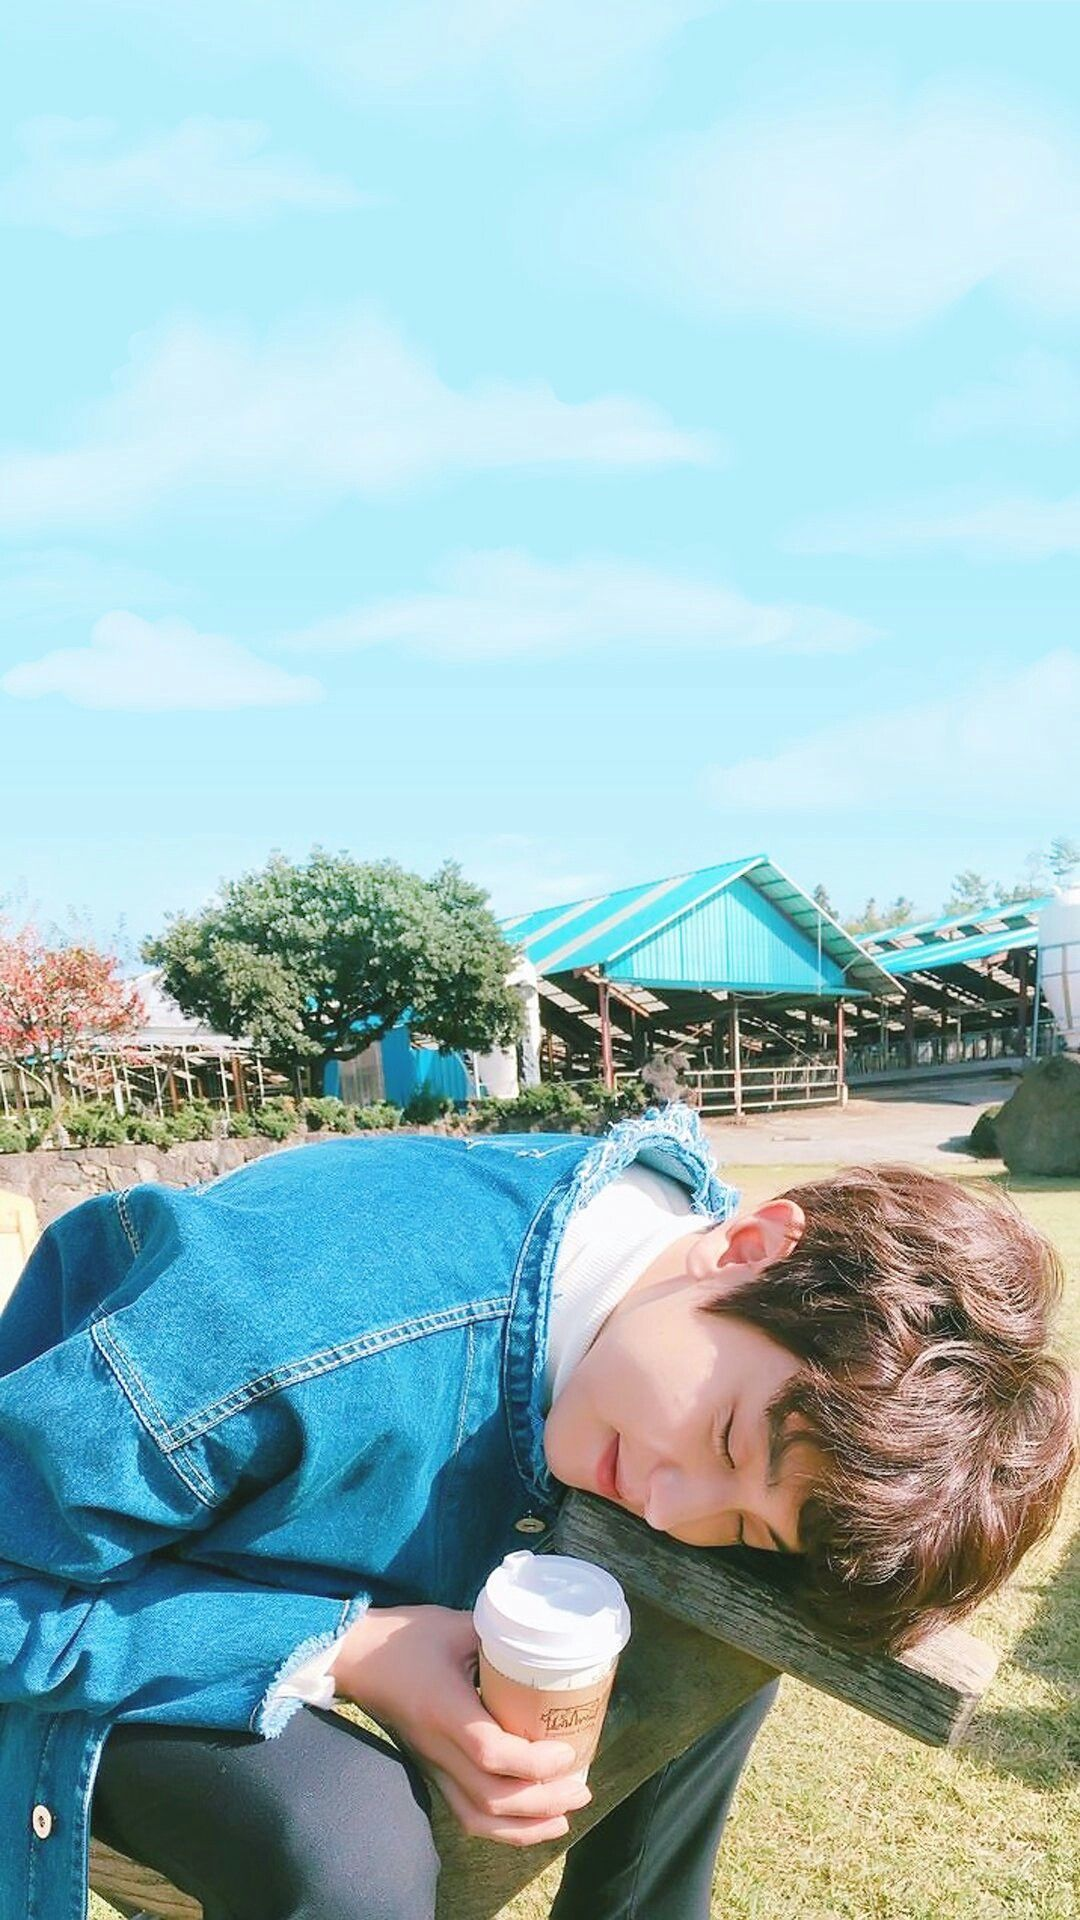 Pin by kayungZ on chanyeol | Pinterest | Exo, Chanyeol and K pop